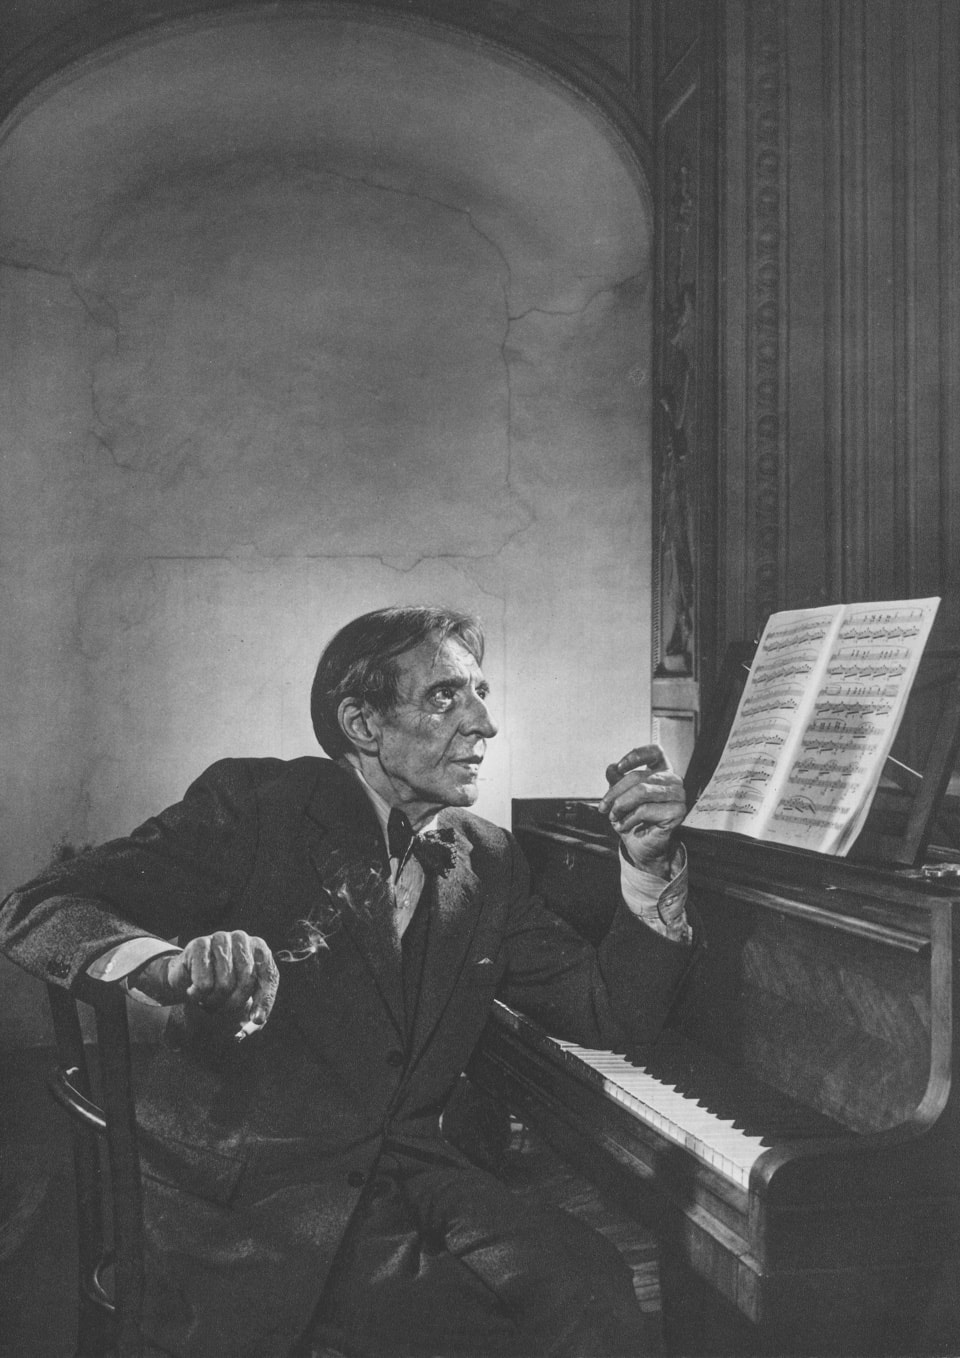 Alfred Cortot by Yousuf Karsh, 1954